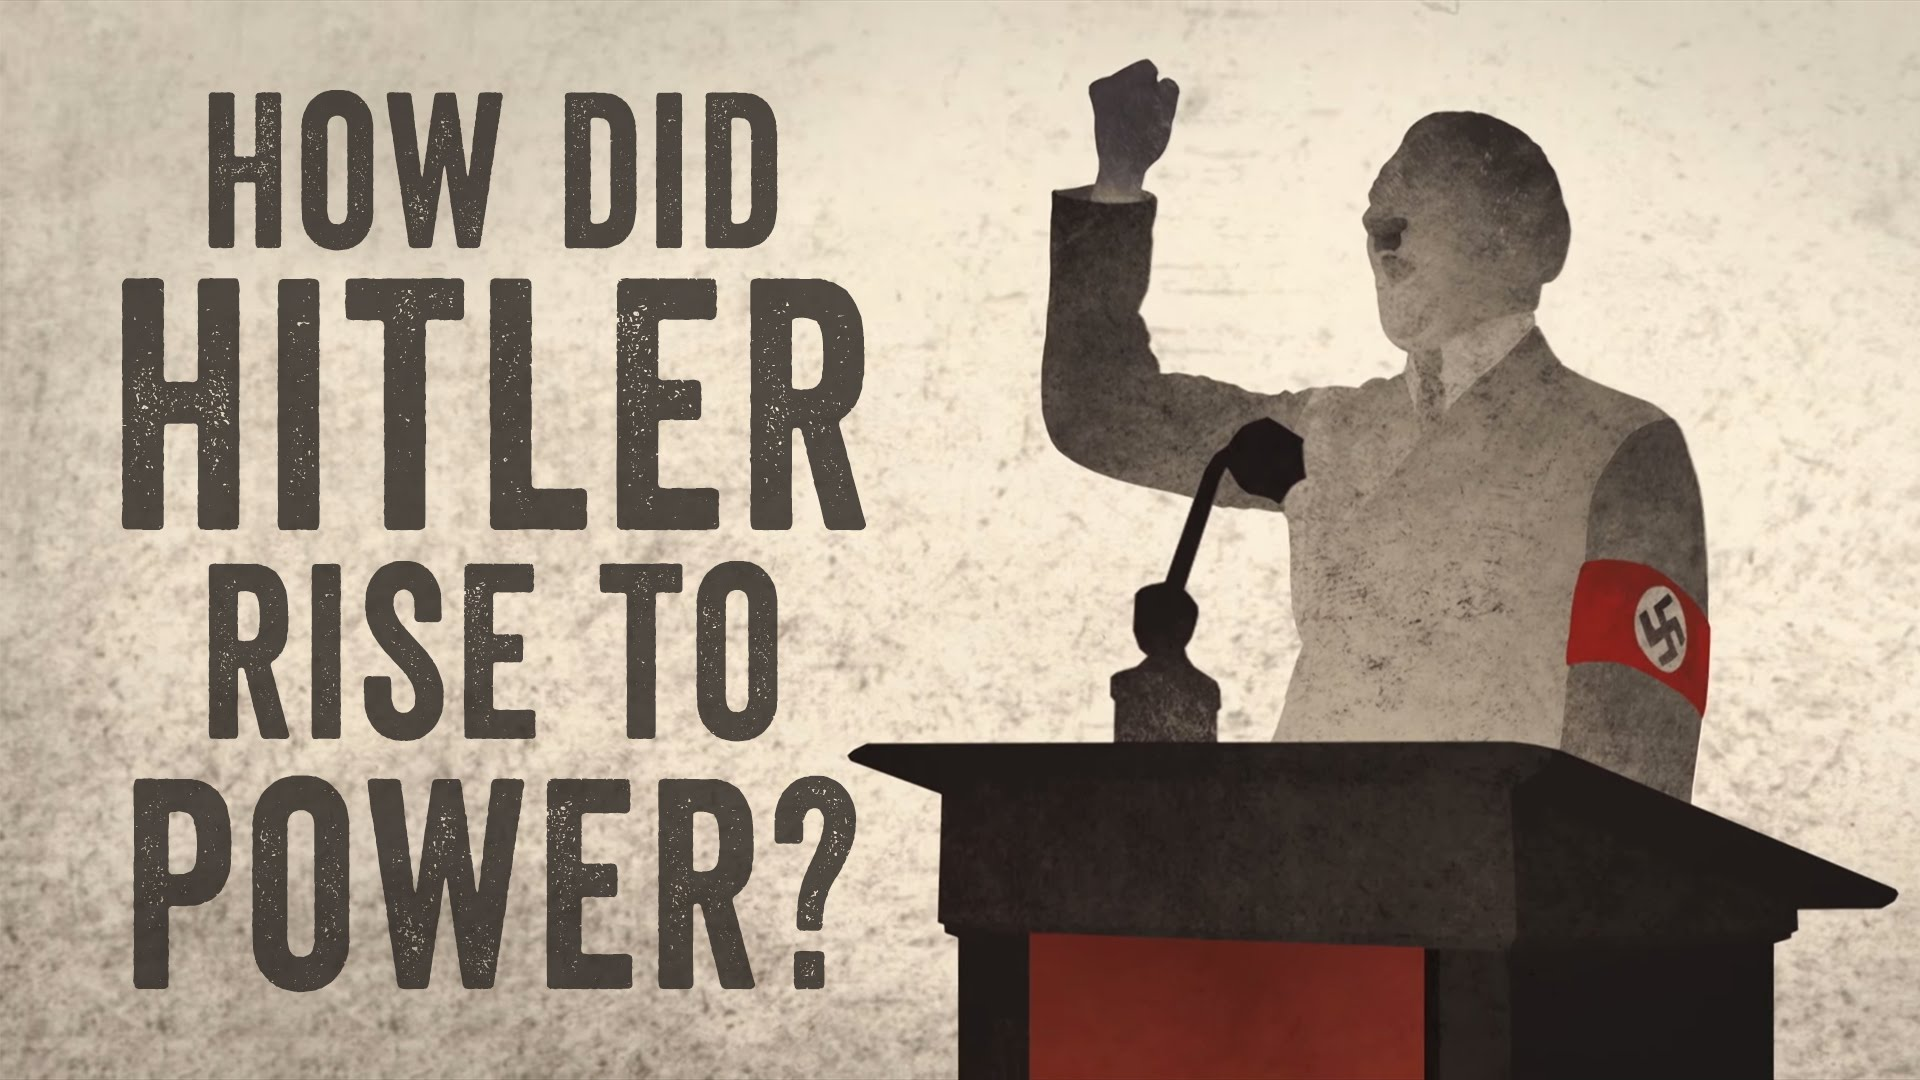 Hitler rose to power because of